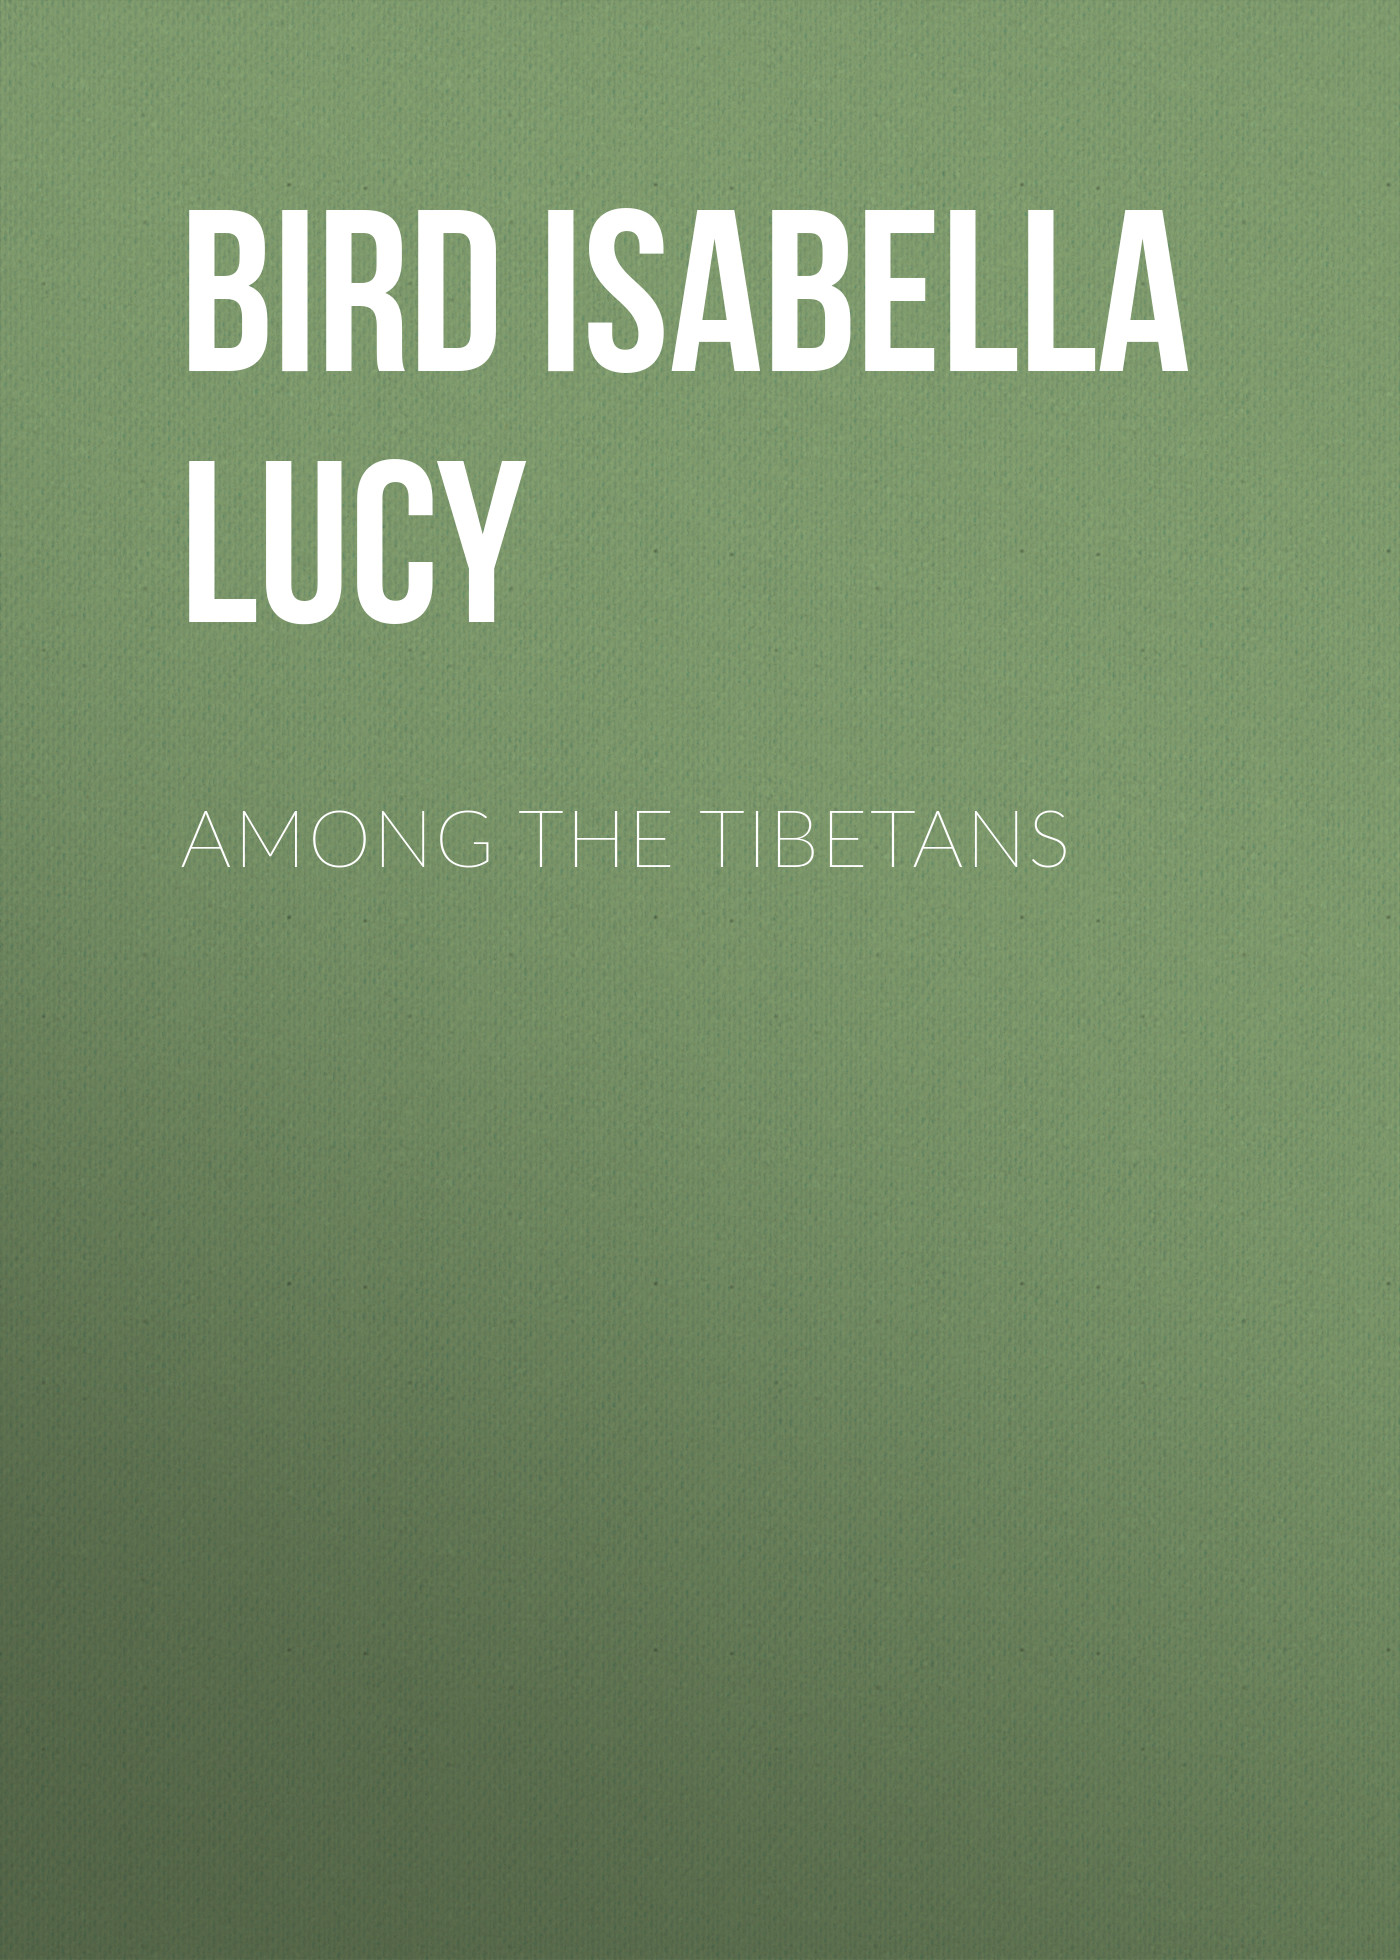 Bird Isabella Lucy Among the Tibetans